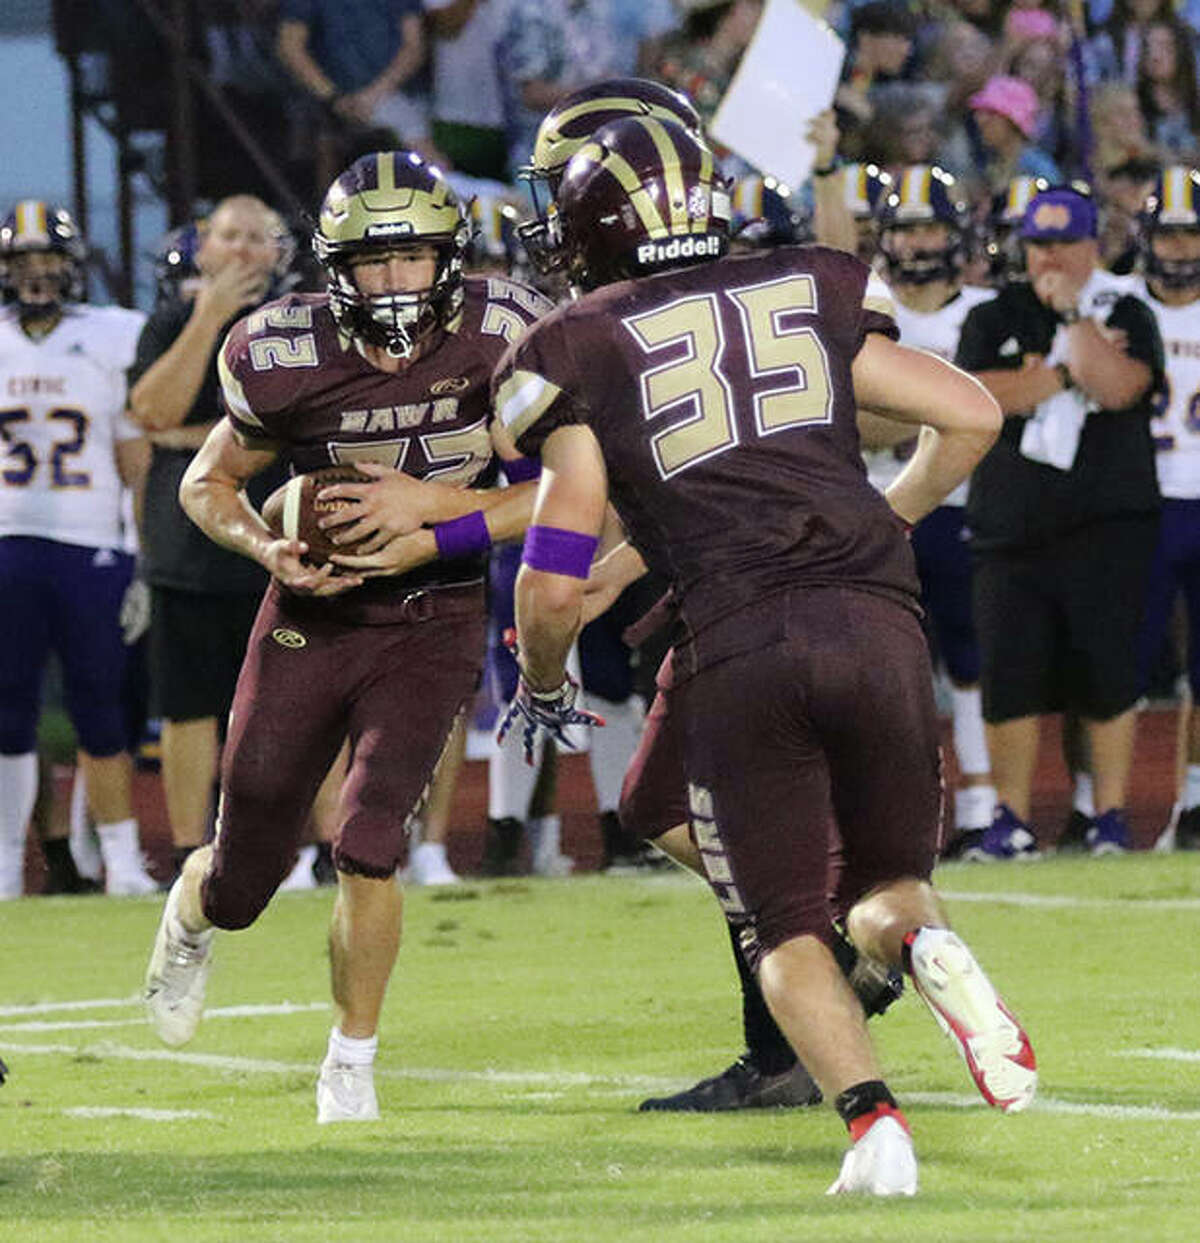 EA-WR running back Seth Slayden takes a handoff before handing off to Zach Oster (35) on an inside reverse during the first half last Friday night in Wood River.